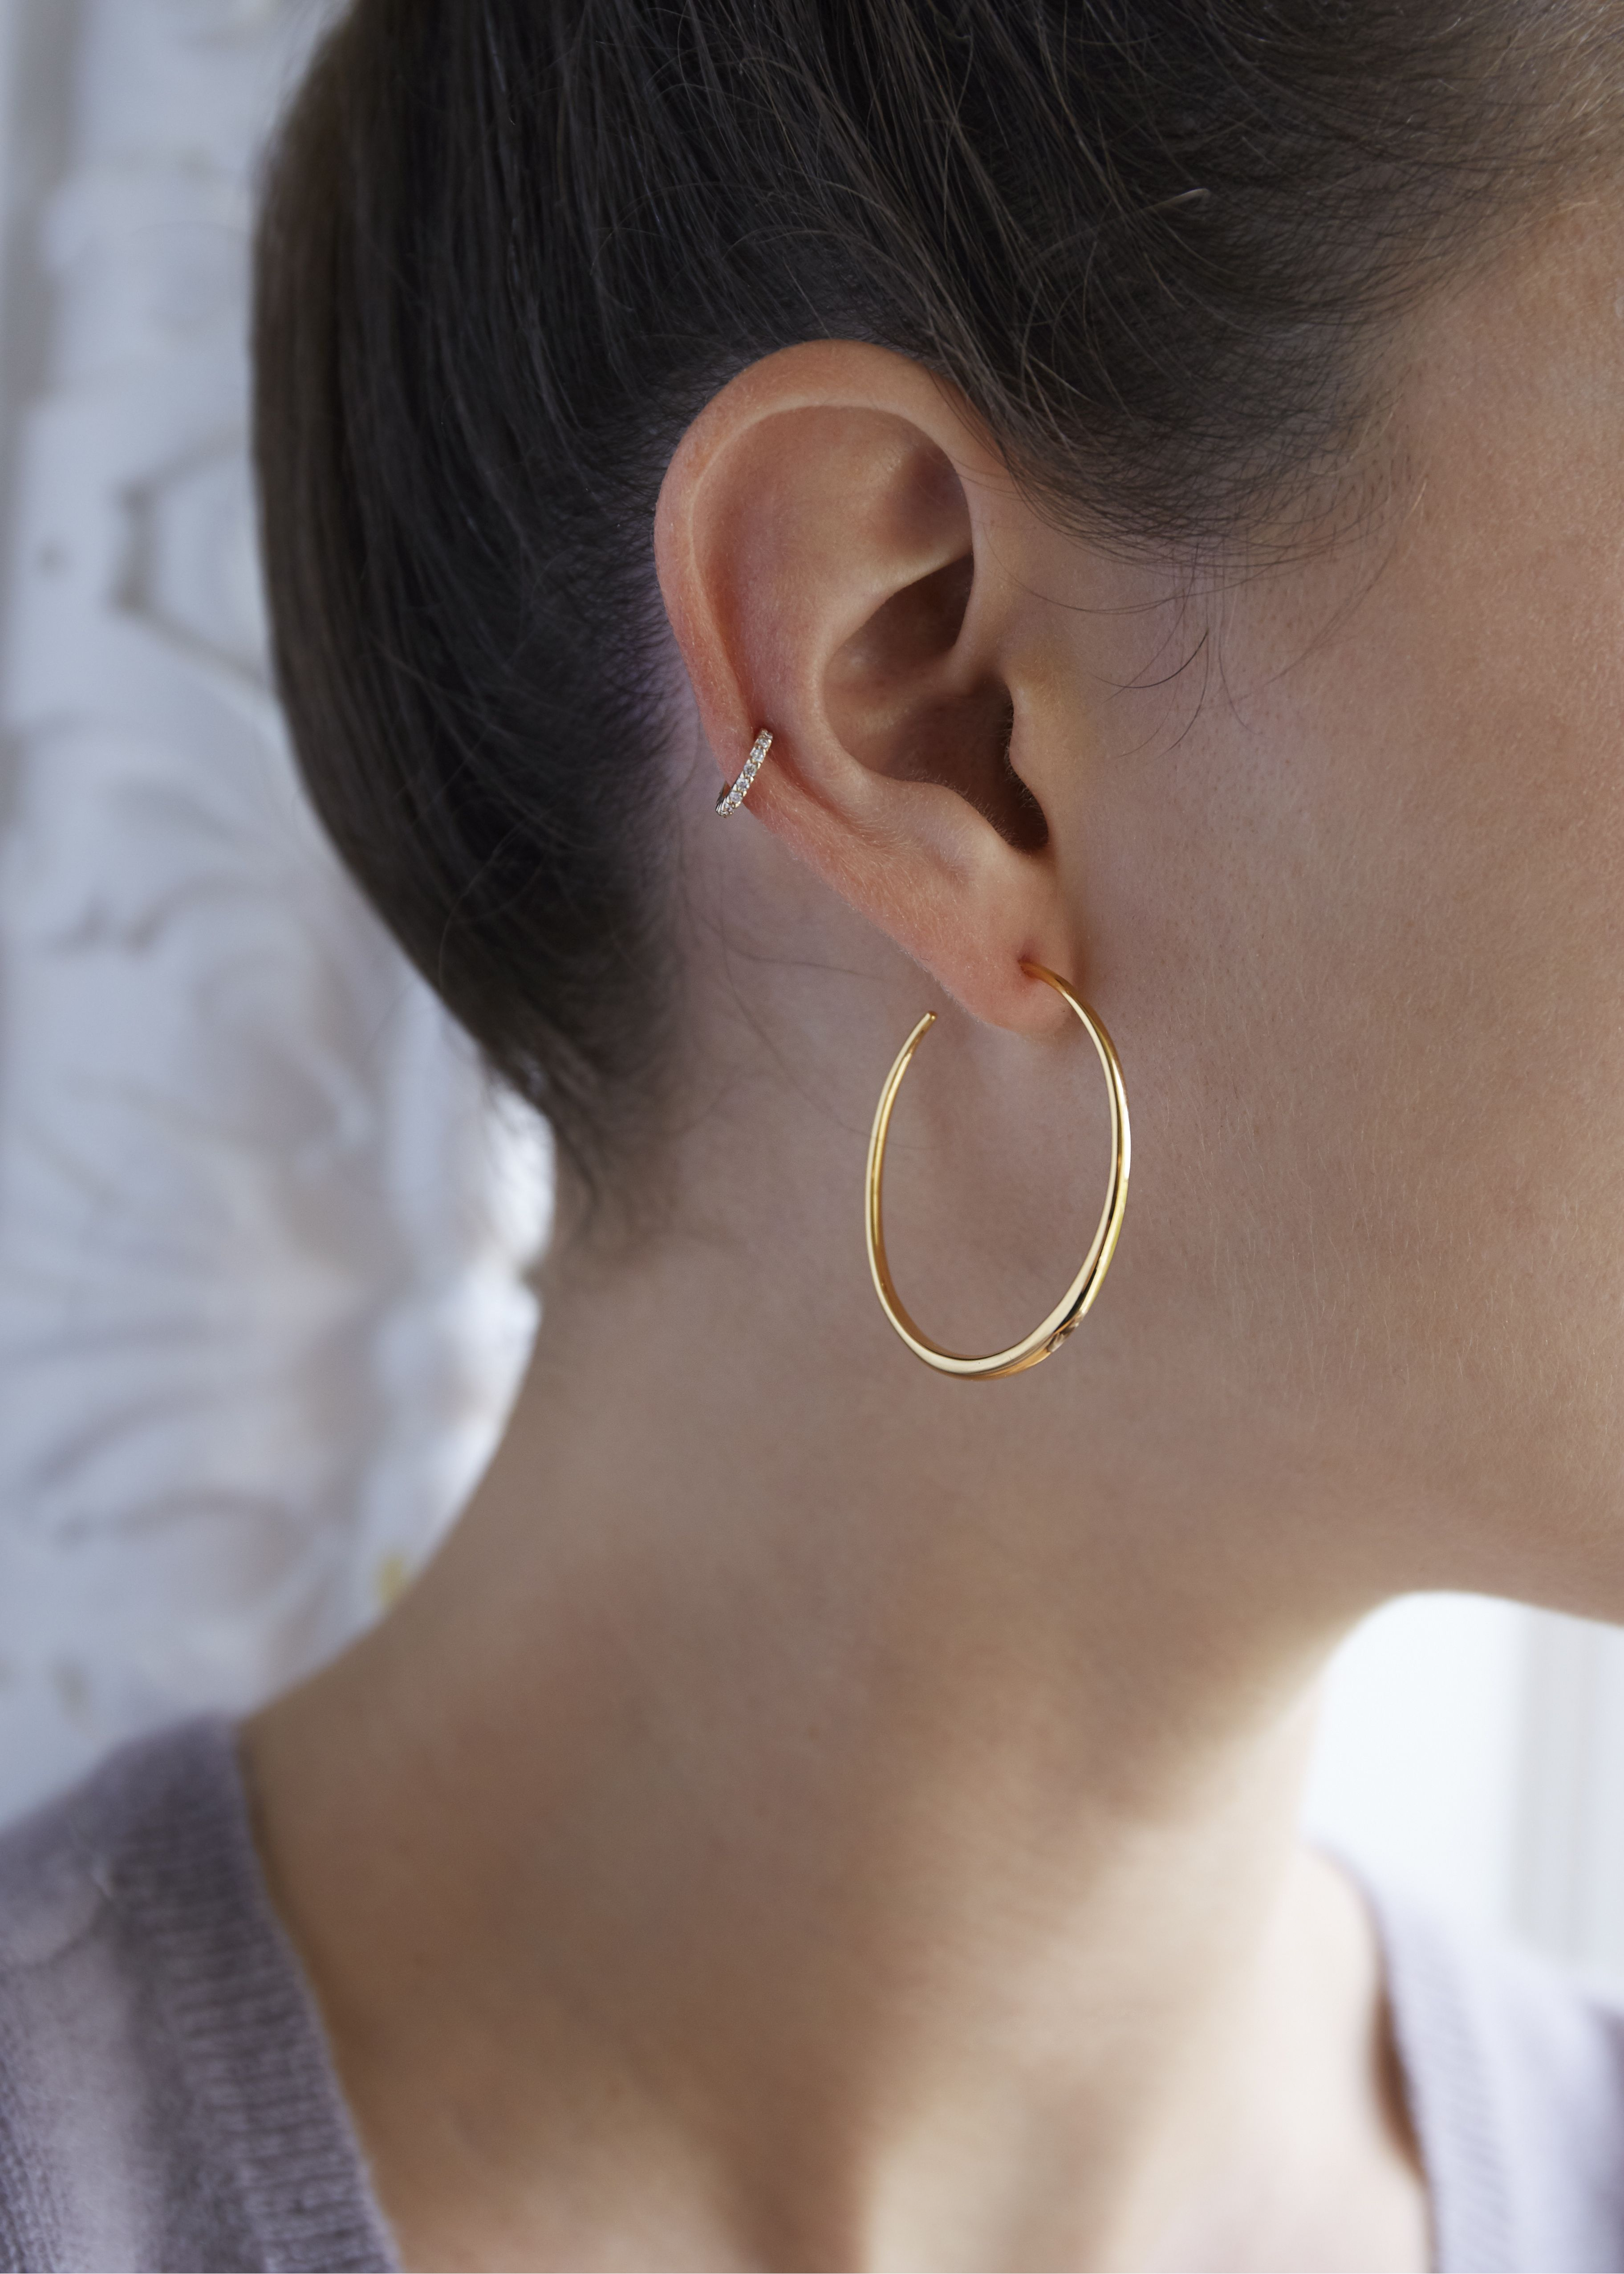 4e6e1b56b New interpretations of iconic designs from the Dinny Hall classic silver  collections. These medium hoops are handmade in 22k yellow gold vermeil and  are the ...